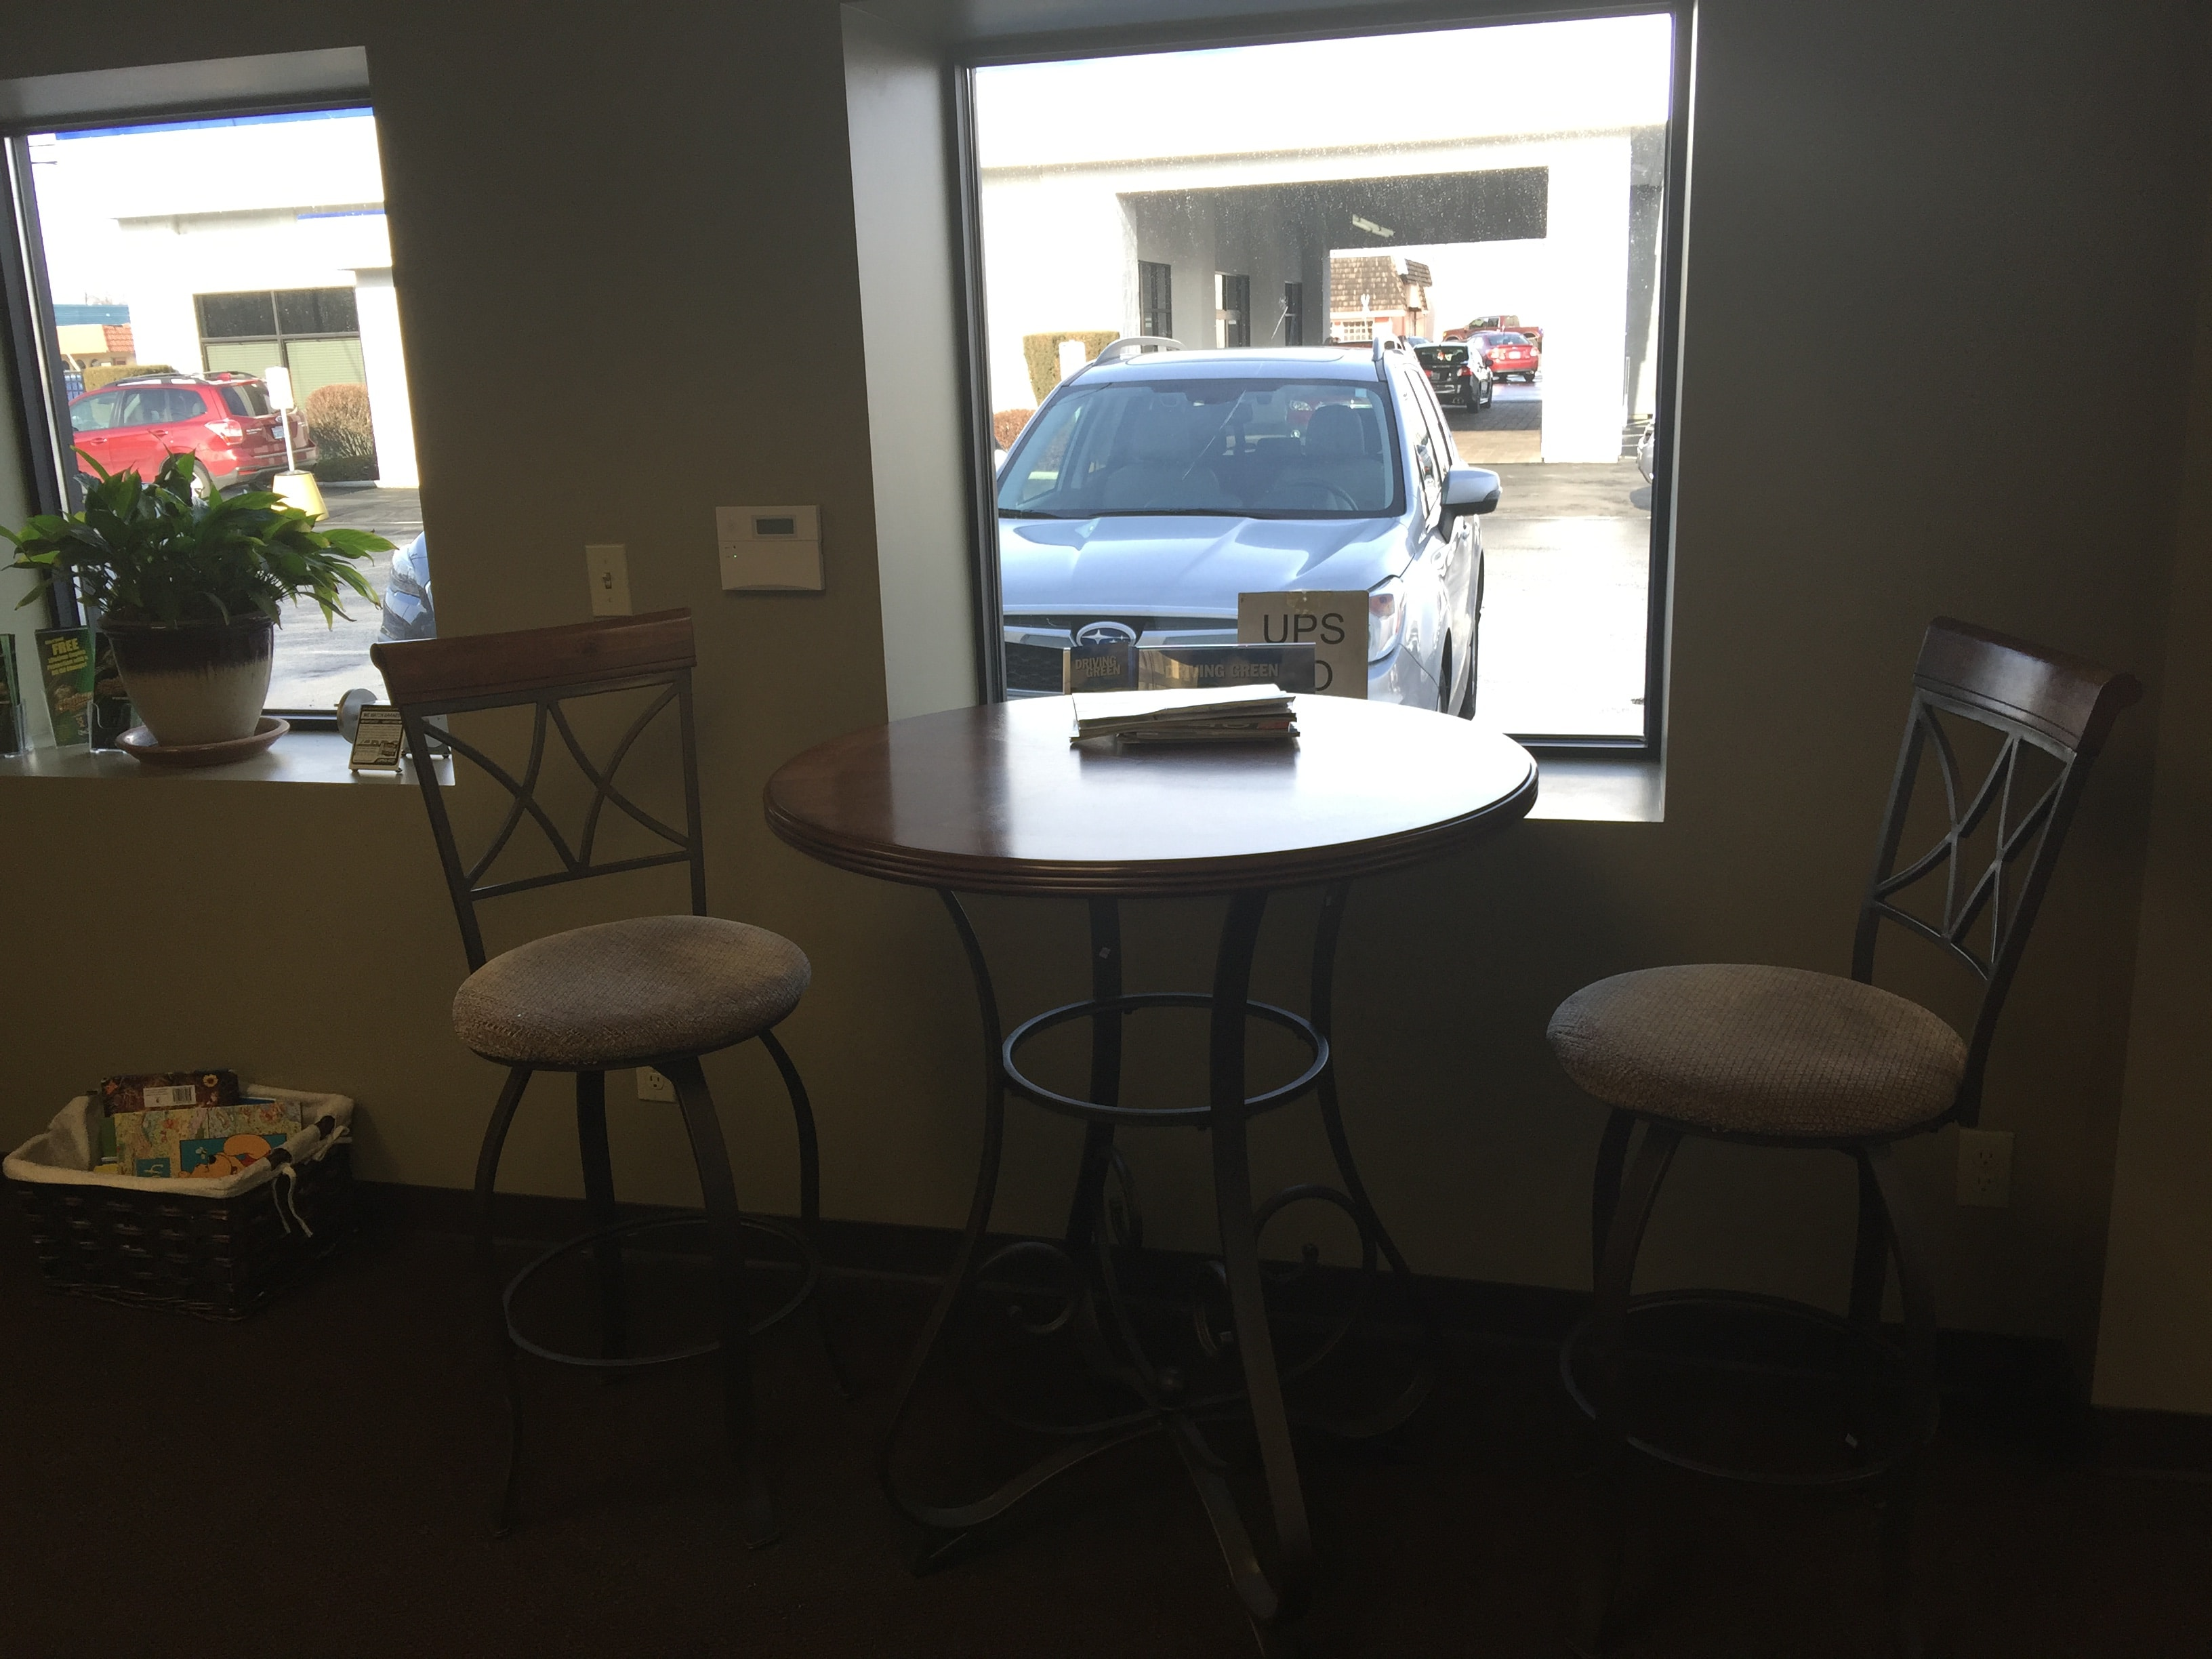 Stewart Subaru service lounge table and chairs